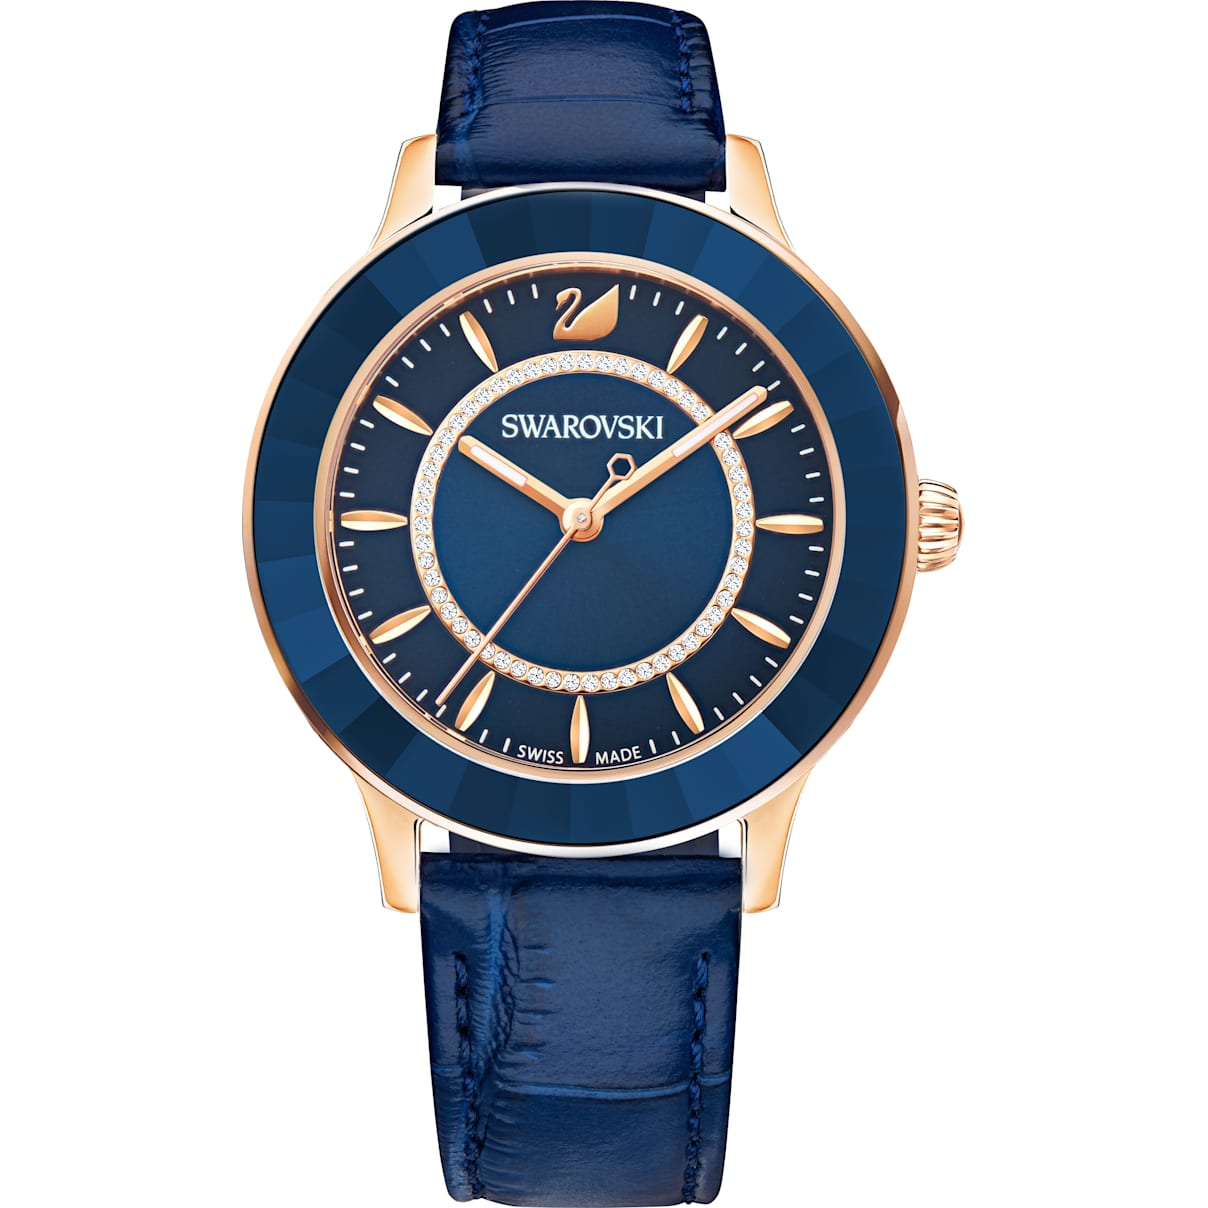 Swarovski Octea Lux Watch, Leather strap, Blue, Rose-gold tone PVD